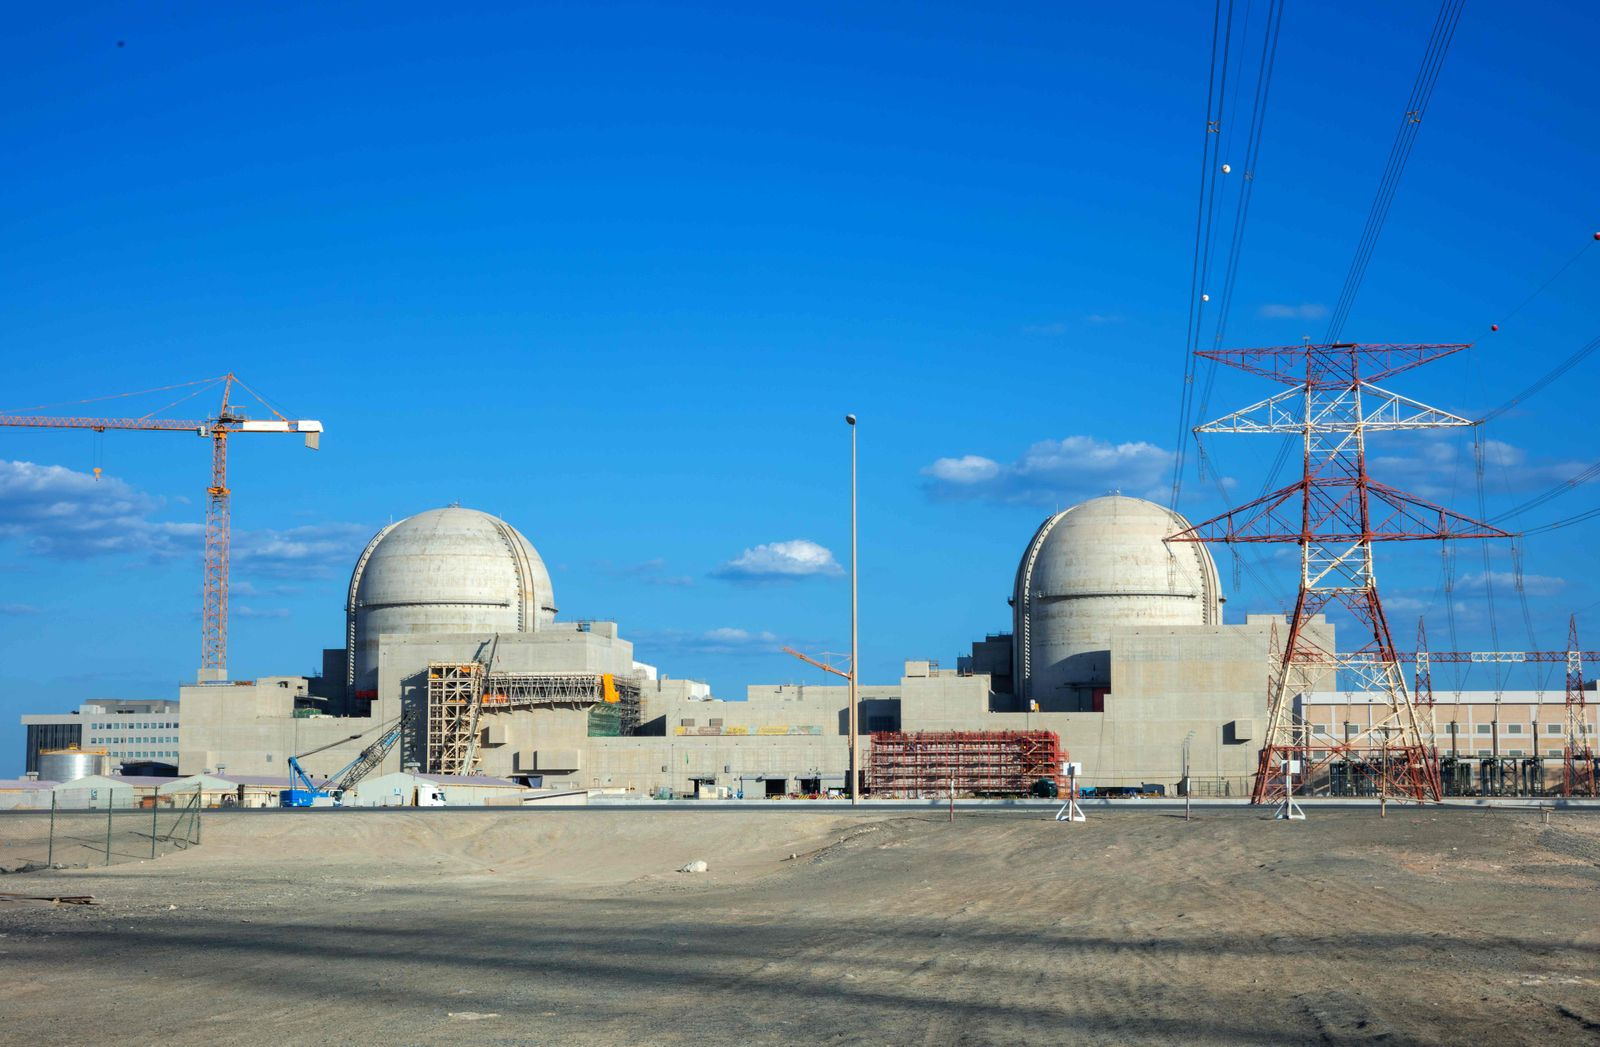 FILES-UAE-ENERGY-NUCLEAR